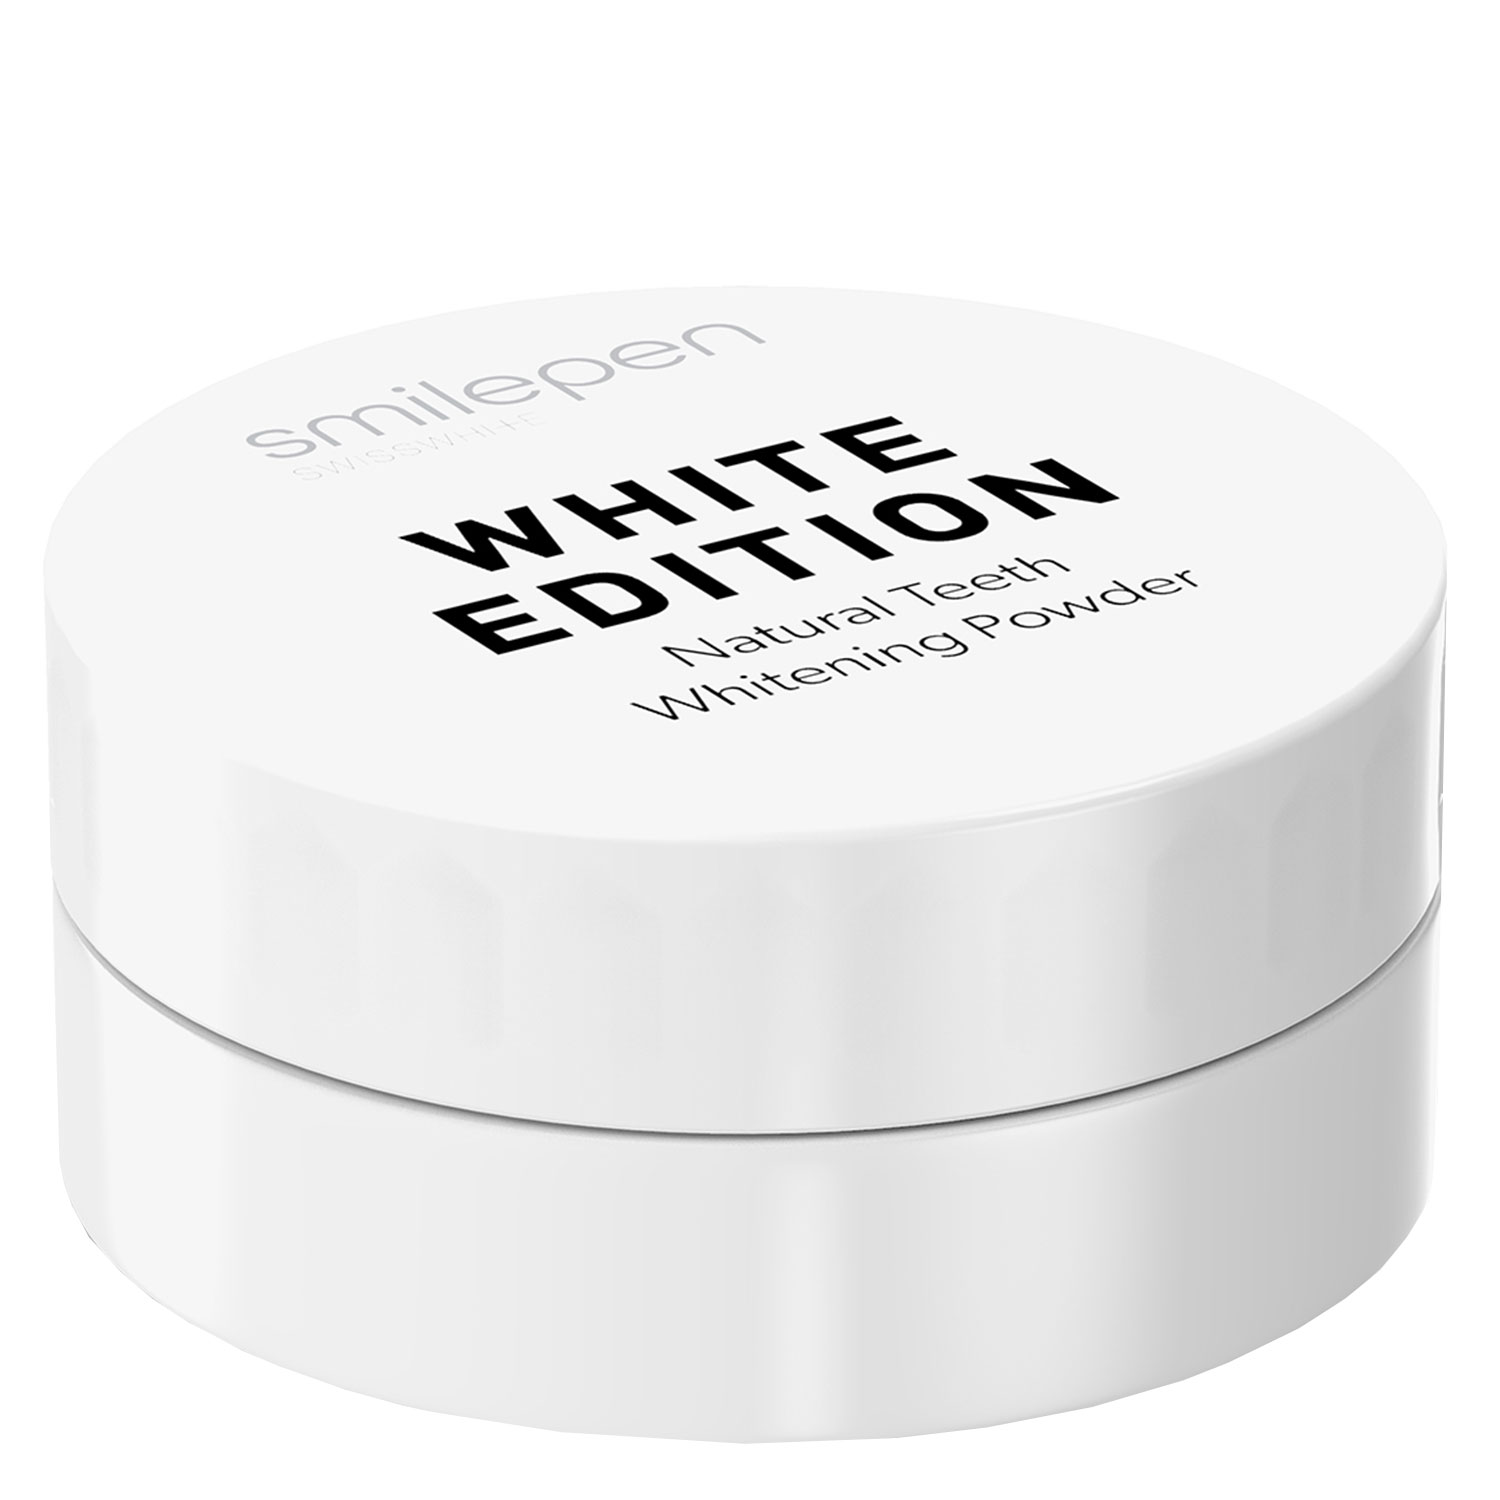 smilepen - Natural Teeth Whitening Powder